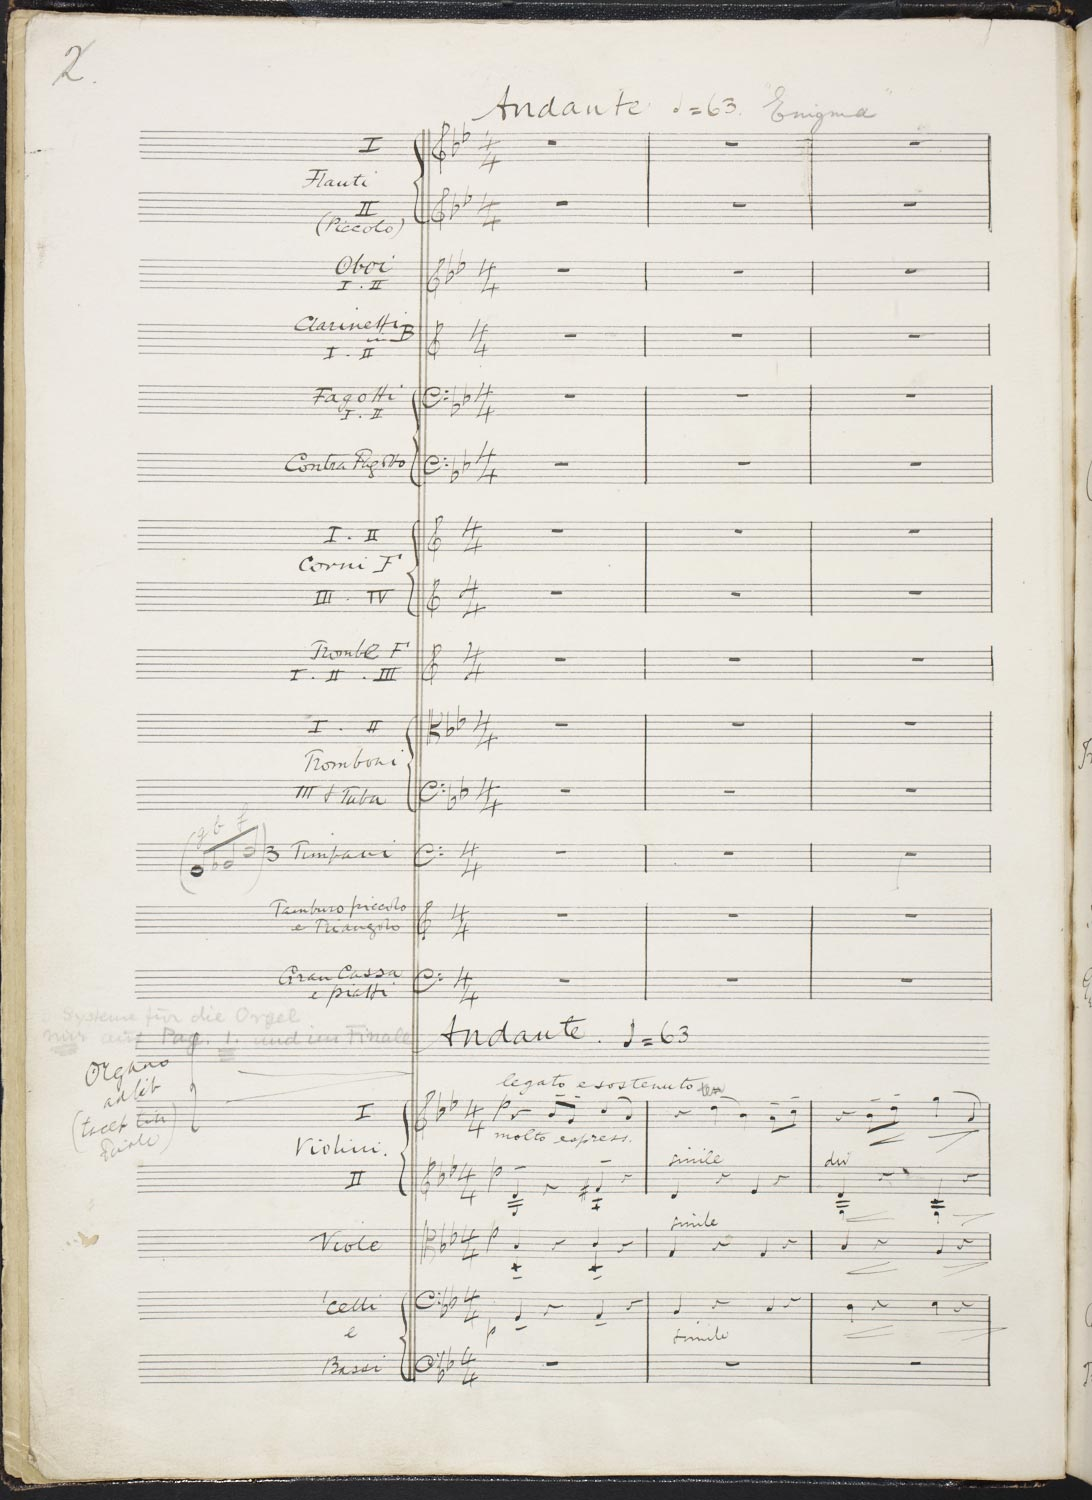 Manuscript for Edward Elgar's Enigma Variations on an Original Theme, f.1v